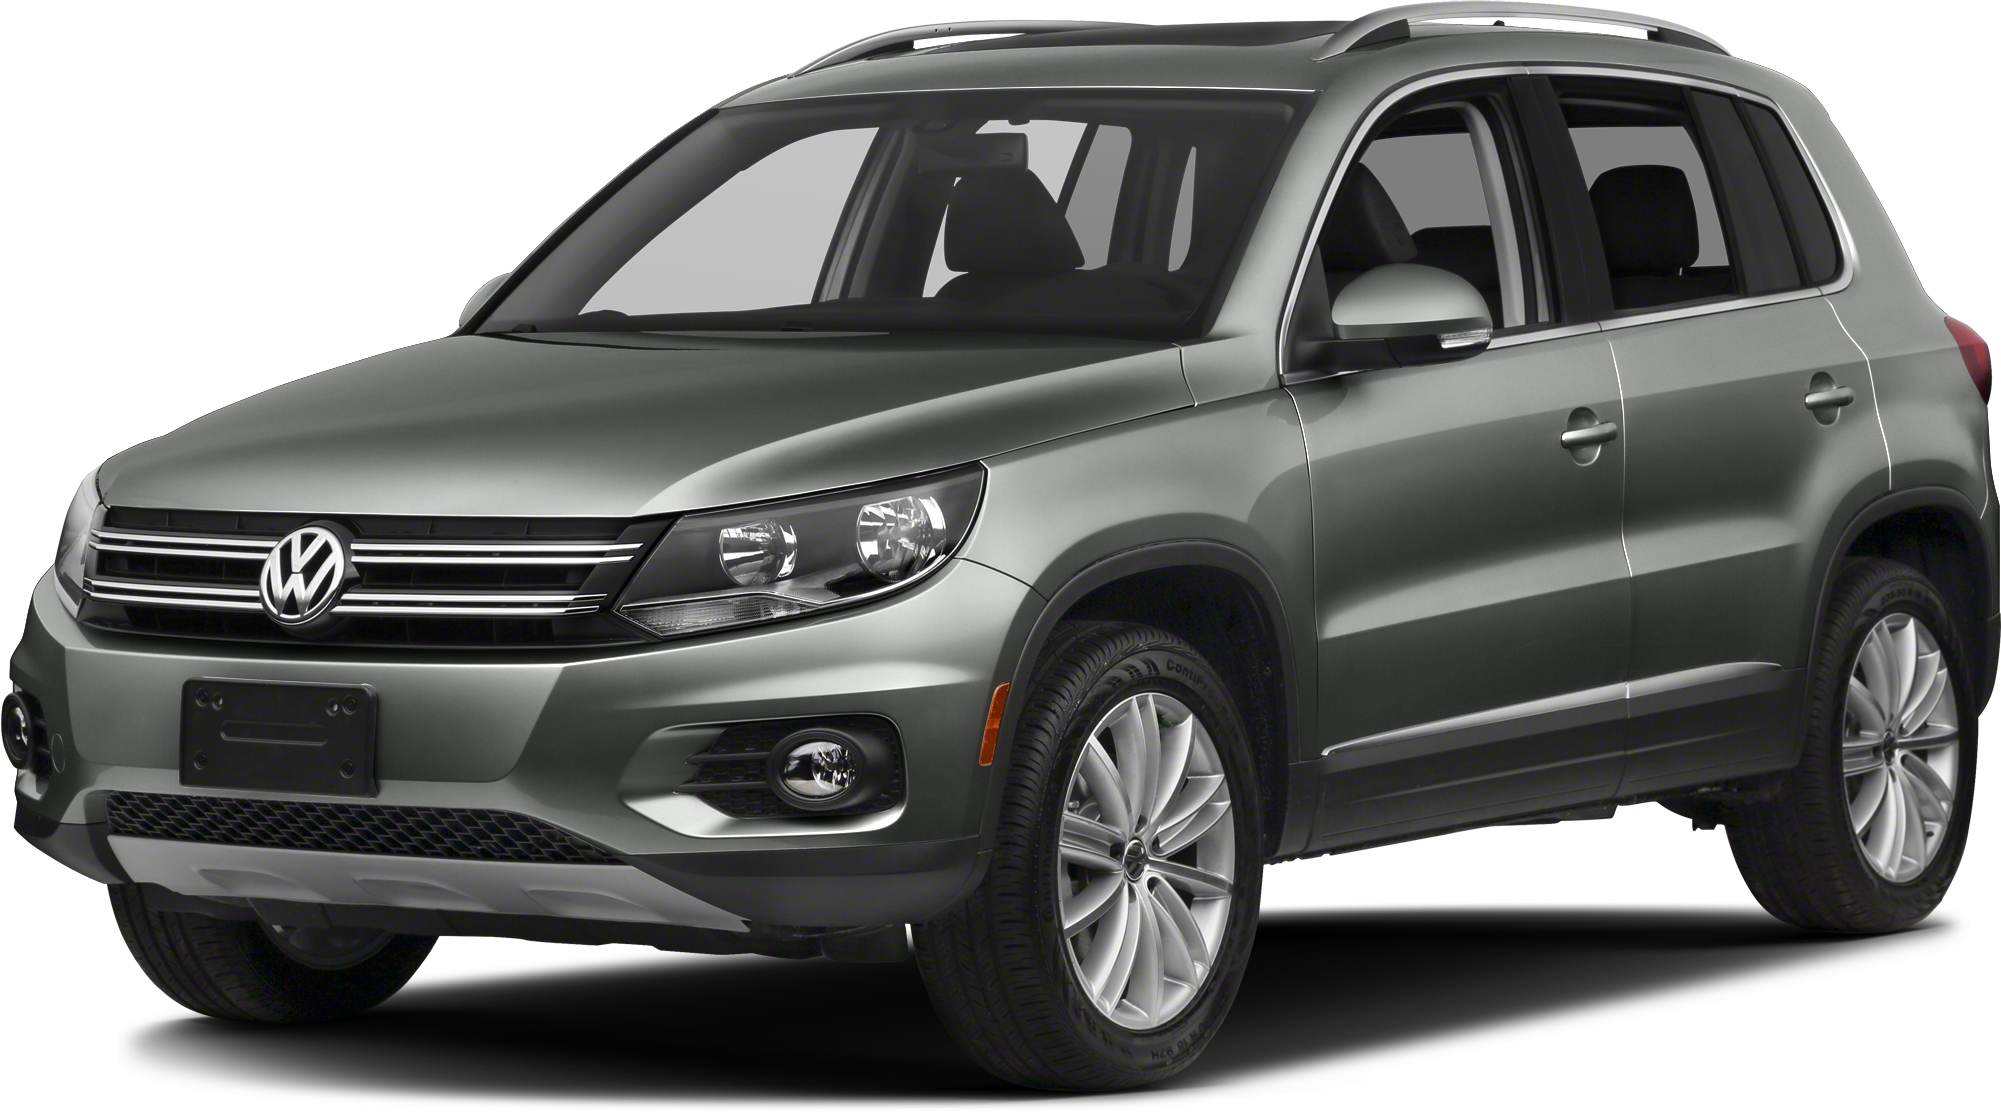 2017 volkswagen tiguan 2 0t wolfsburg edition 4motion. Black Bedroom Furniture Sets. Home Design Ideas